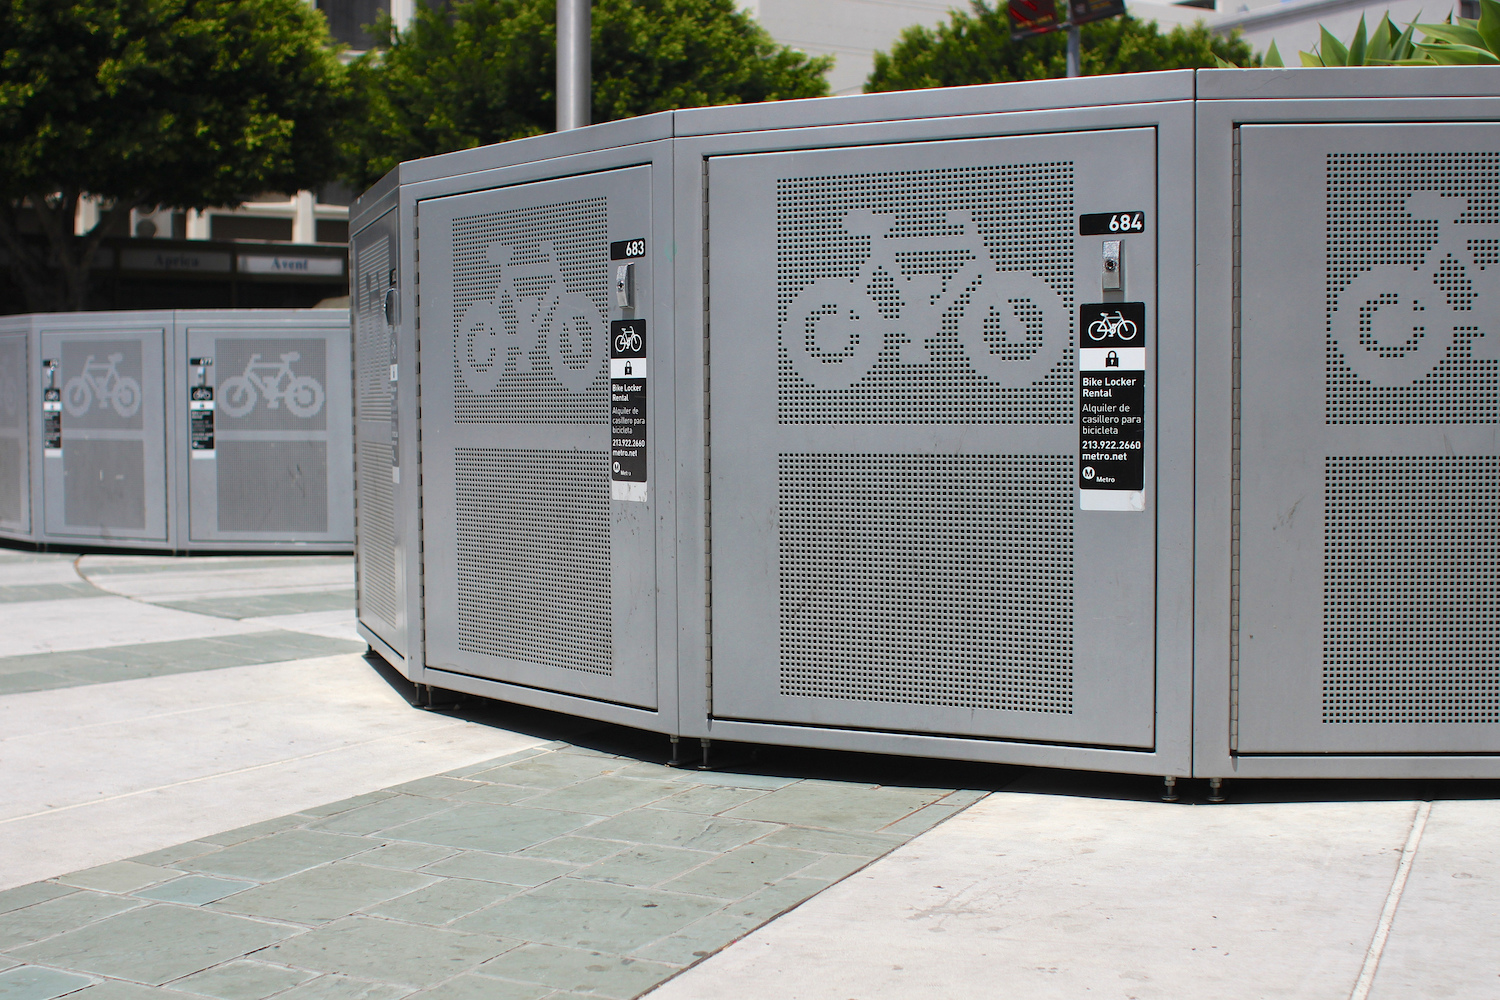 Bicycle Lockers